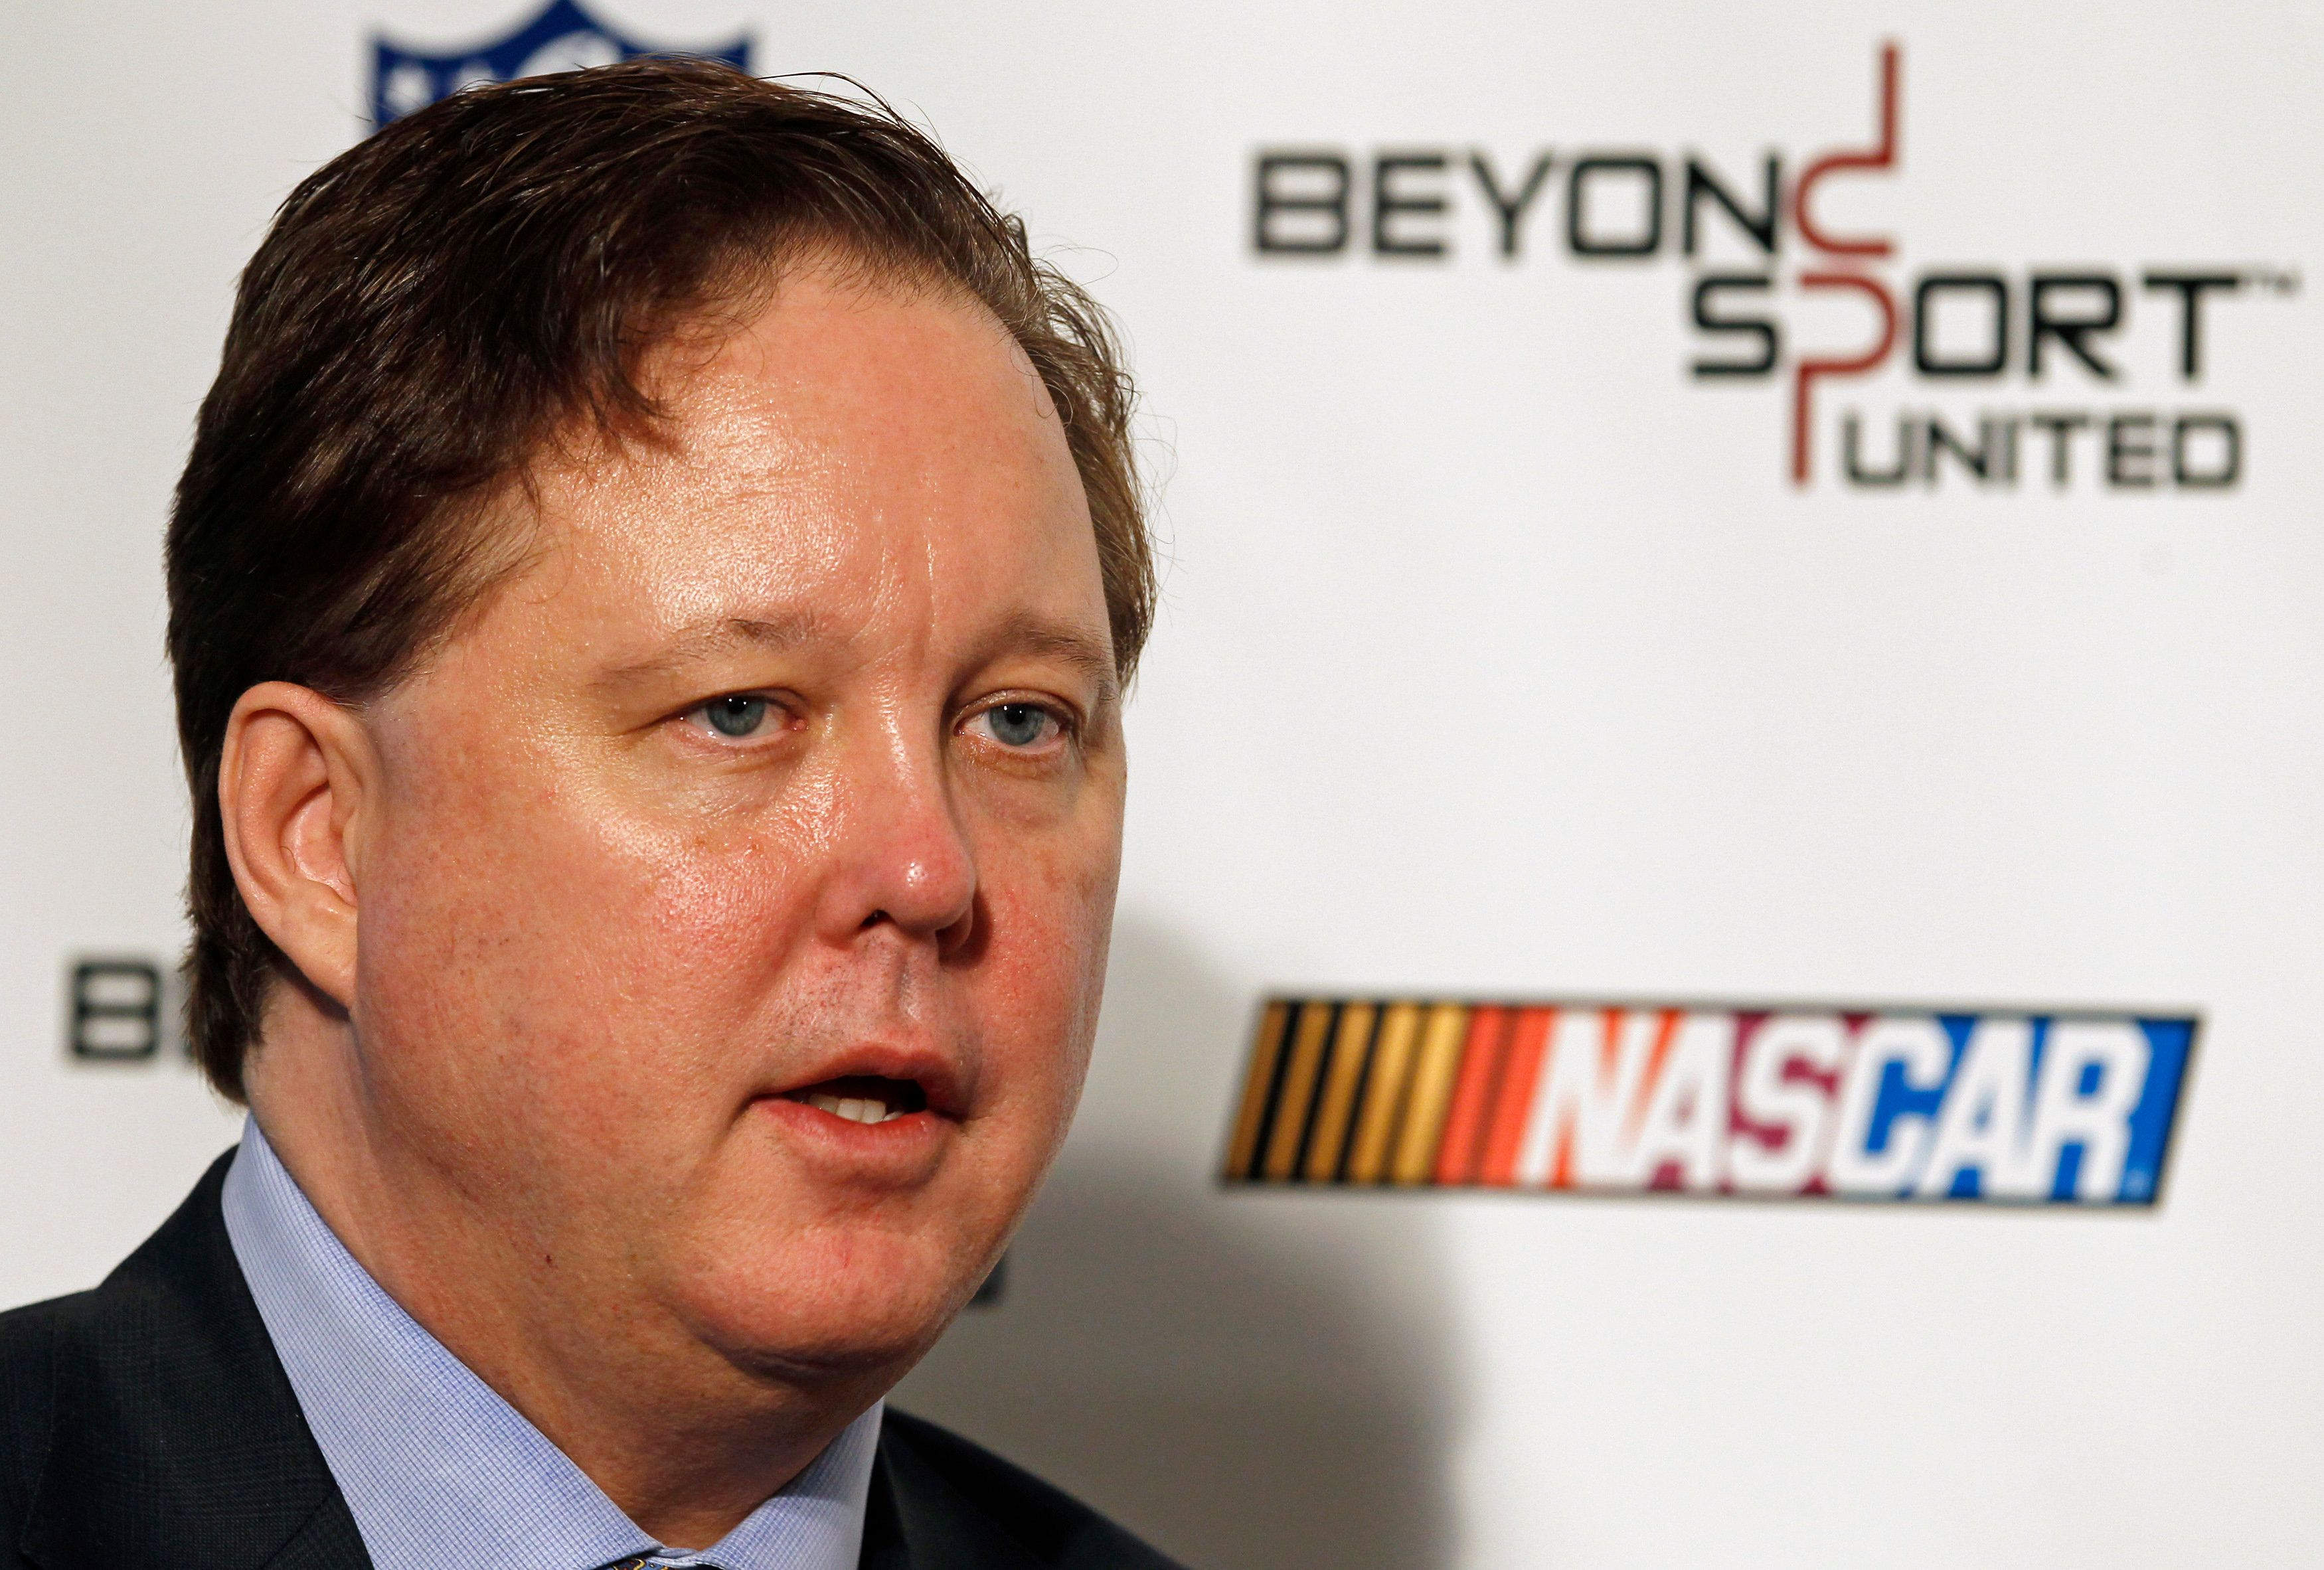 NASCAR CEO Brian France Busted For DUI In The